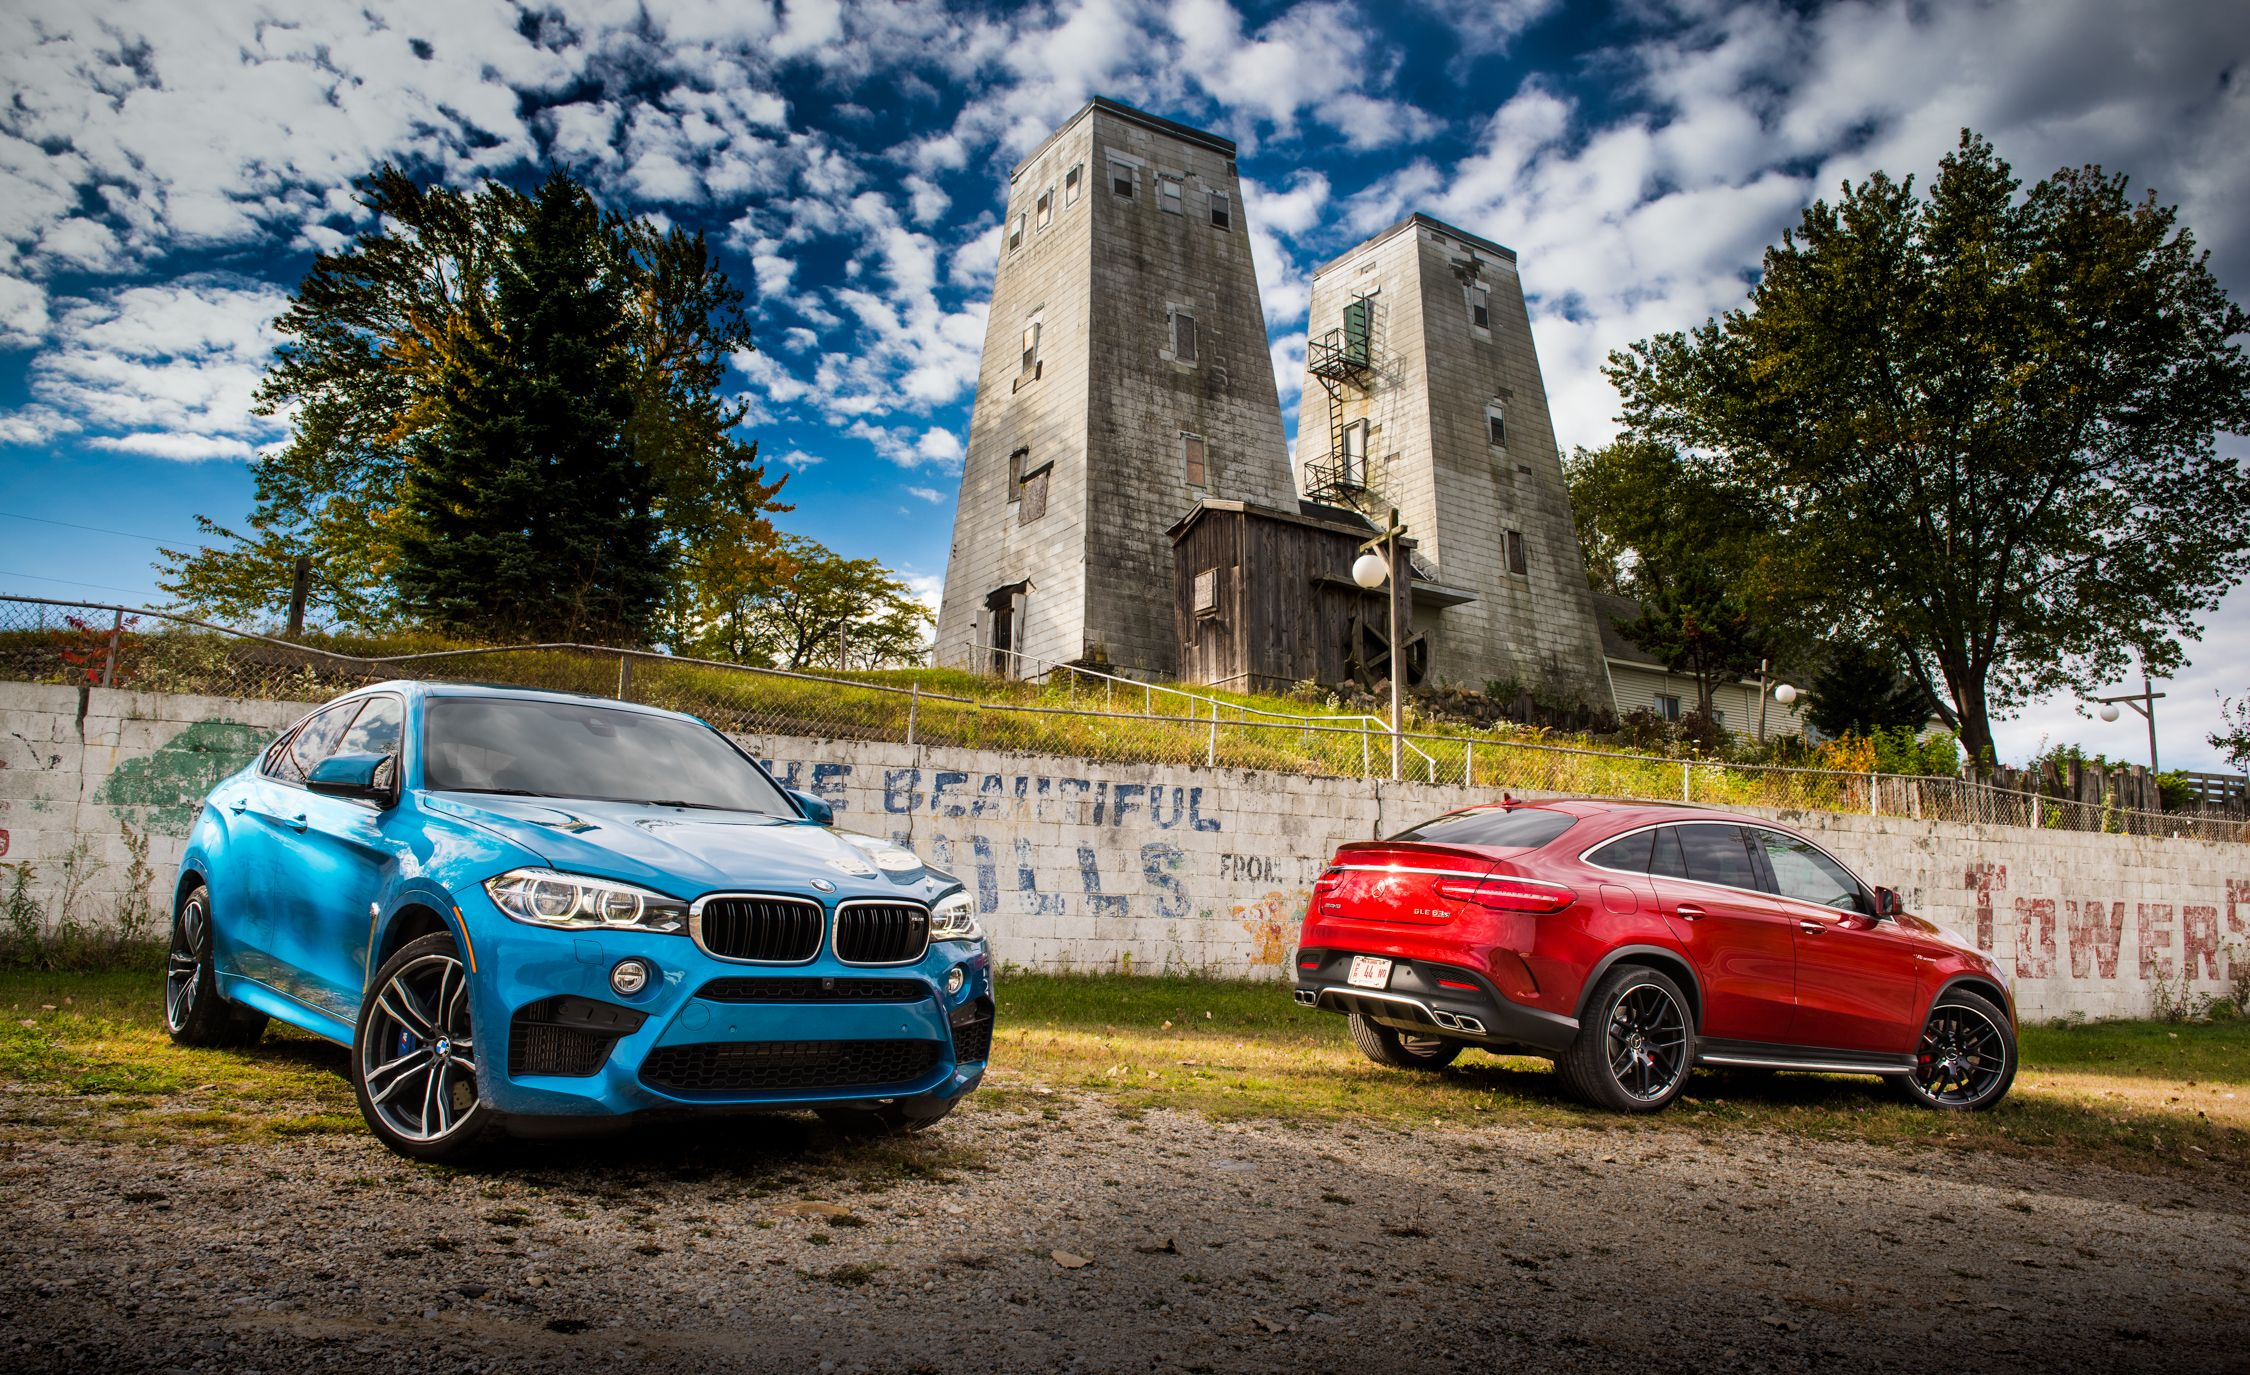 2015 Bmw X6 M Vs 2016 Mercedes Amg Gle63 S Coupe Comparison Test